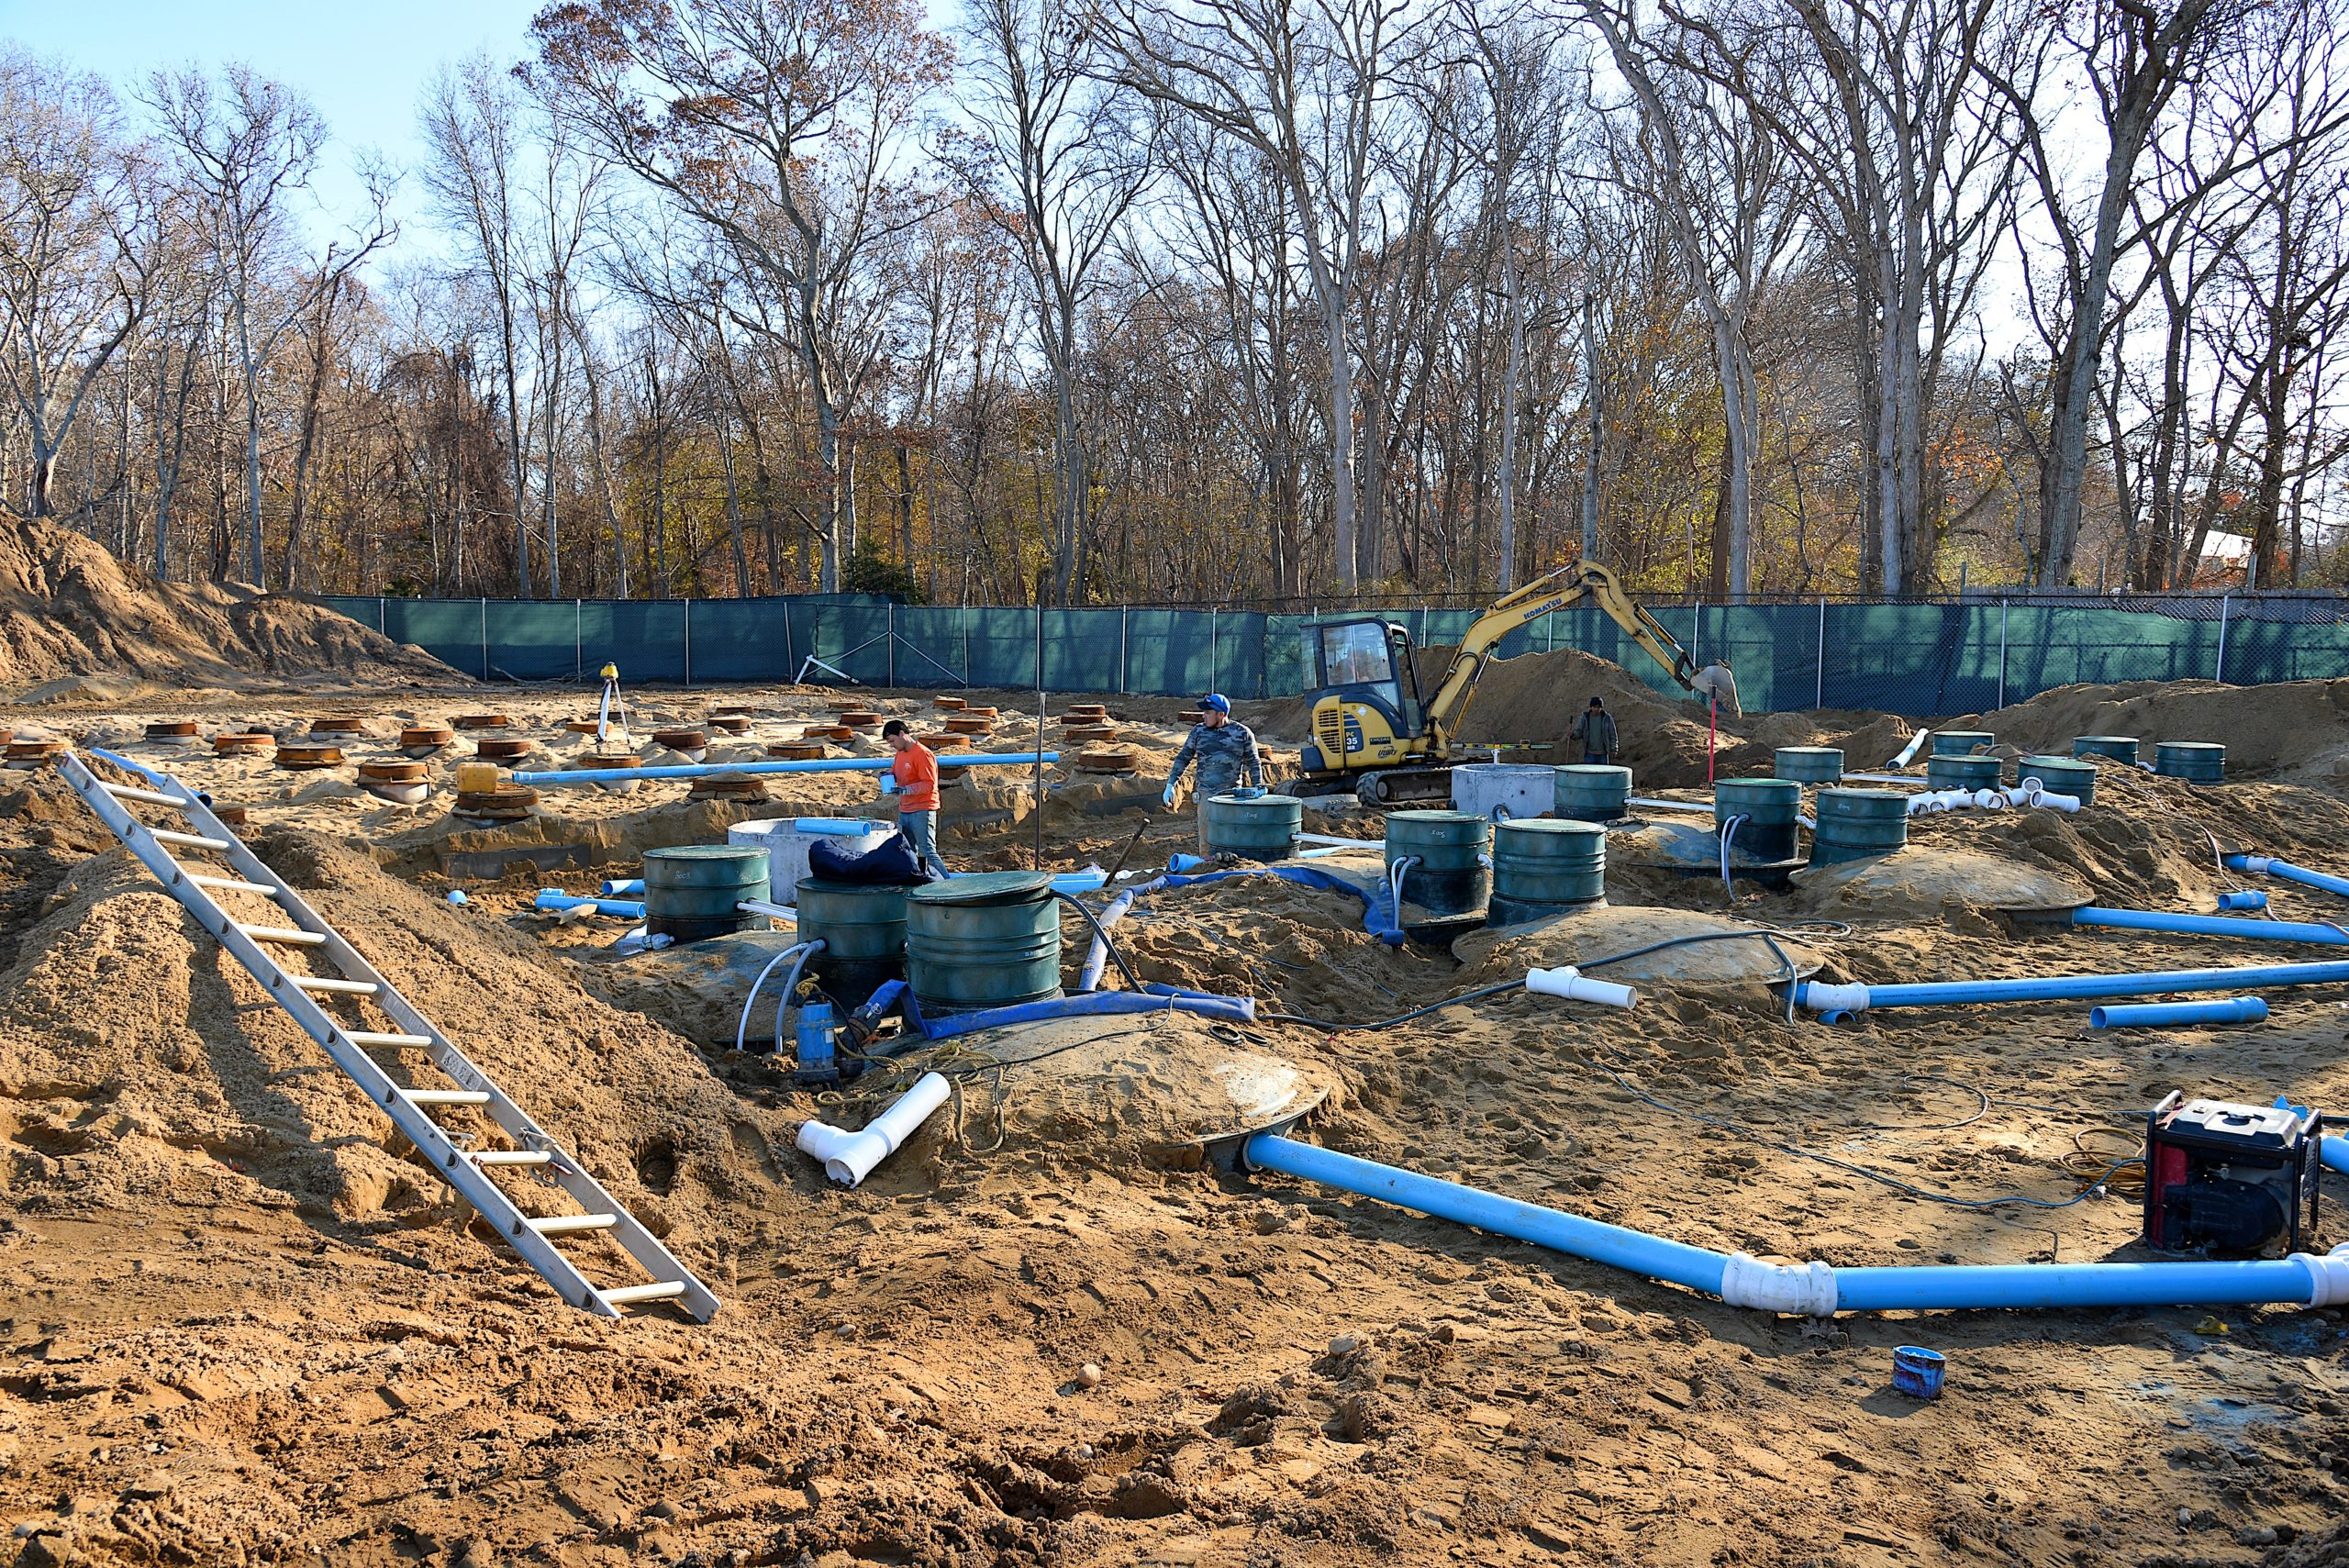 The Springs School is in the midst of a $1.6 milion replacement of its septic system, which will reduce nitrogen in effluent by more than 90 percent.